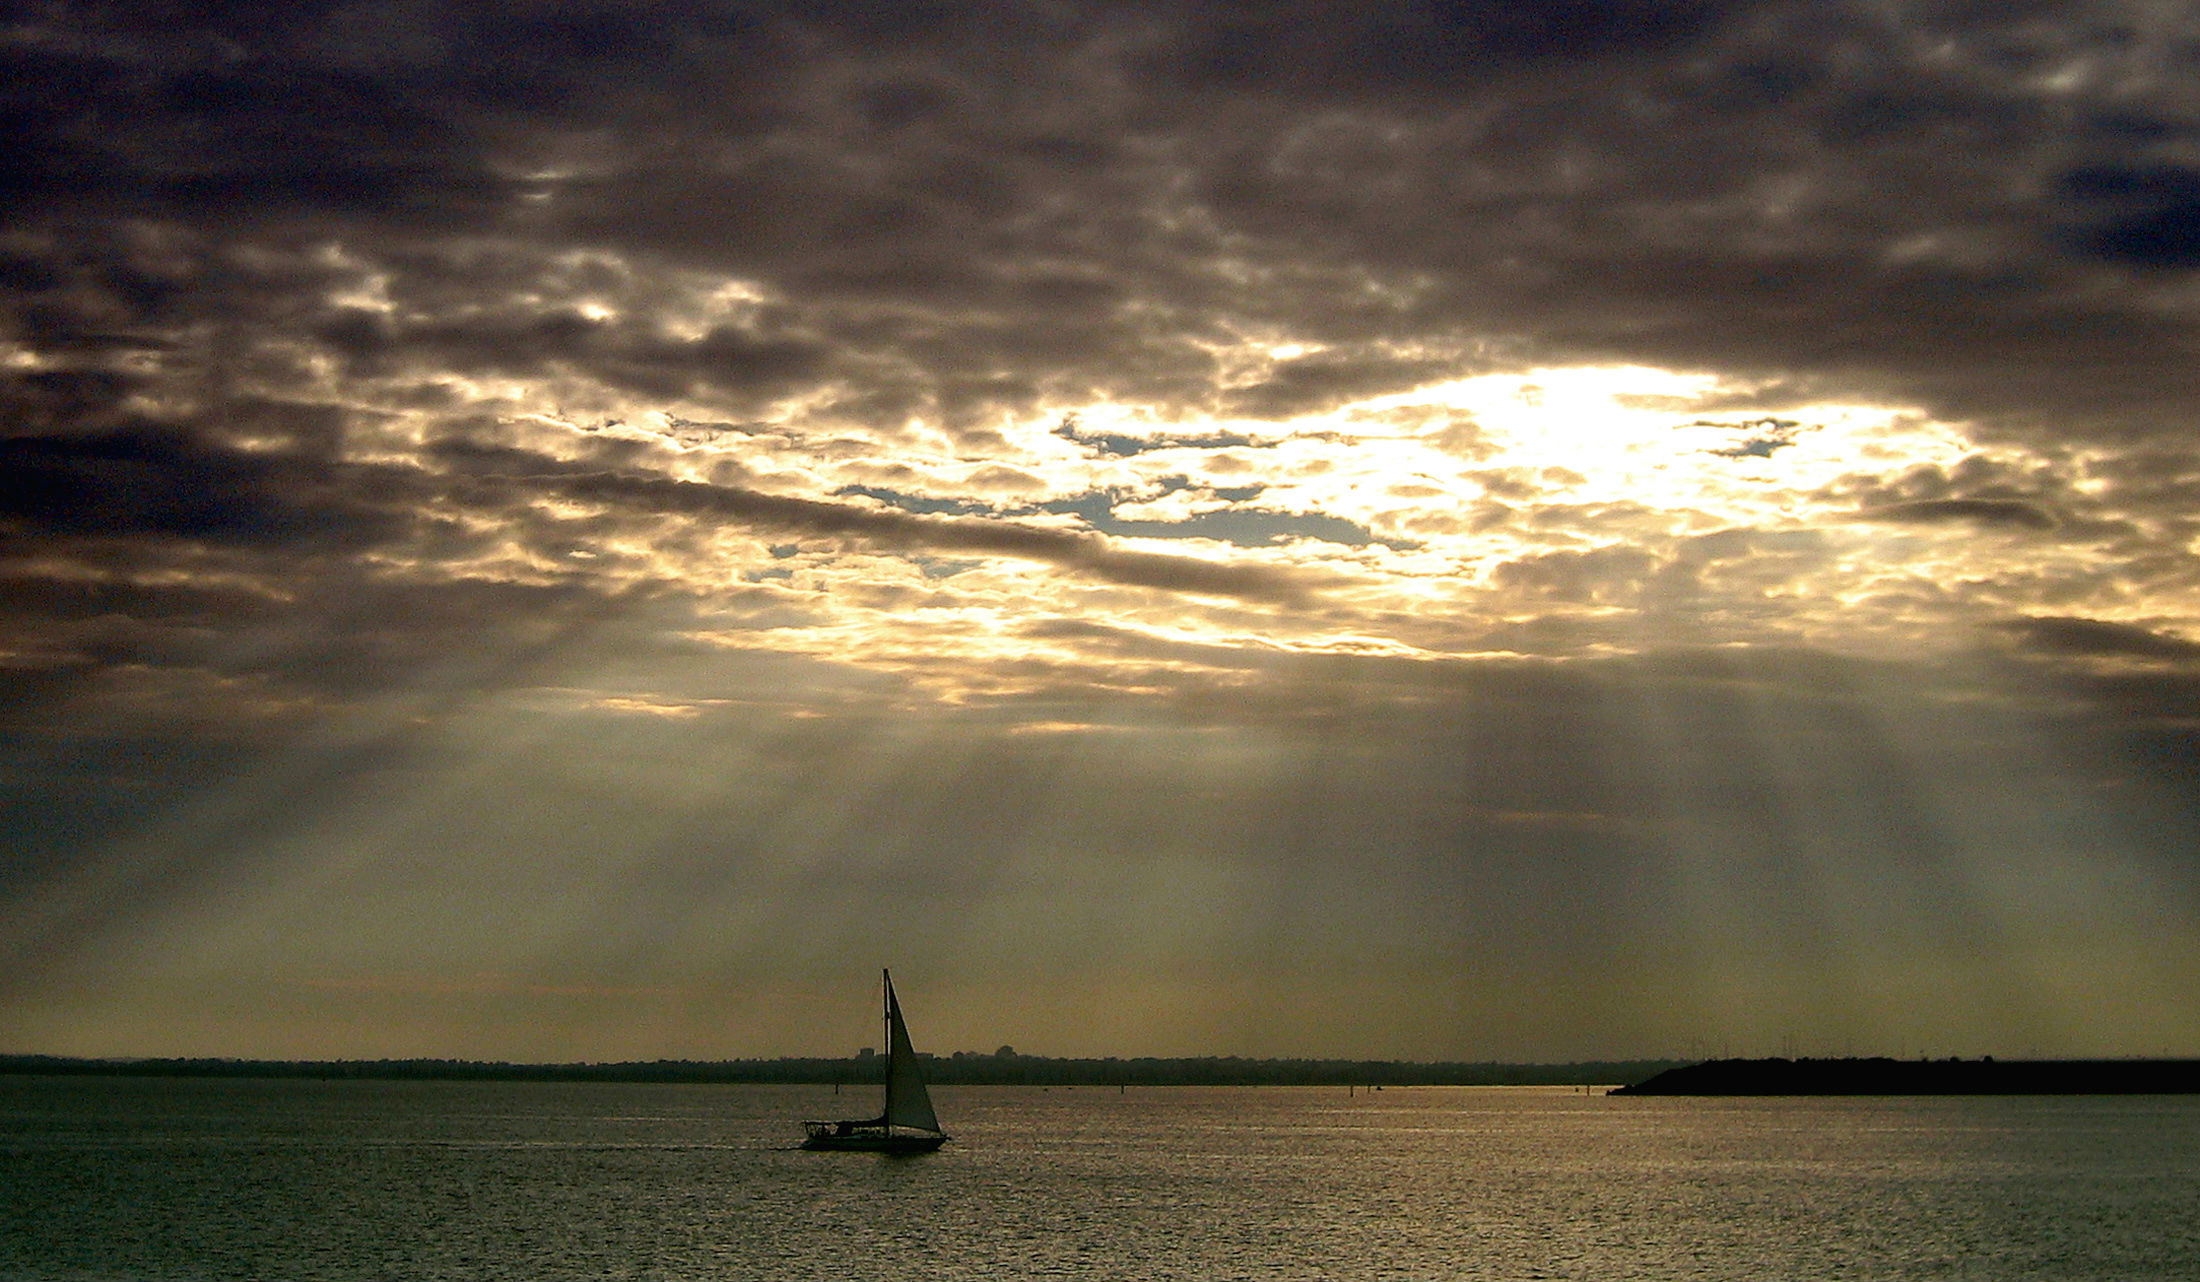 A boat sails on Sydney's Botany Bay as sun rays break through clouds November 10, 2004. Australia's weather is changing, weather scientists said at a climate and water forum this week, blaming growing clouds of carbon dioxide from industry, changes in Antarctic circulation because of ozone depletion and natural variability. The main scientific body in Australia, the Commonwealth Scientific and Industrial Research Organisation (CSIRO), has projected that by 2030 the average temperature in Australia will increase by two degrees celcius (35.6 Farenheit), and a change in rainfall of between plus five percent and minus 15 percent.